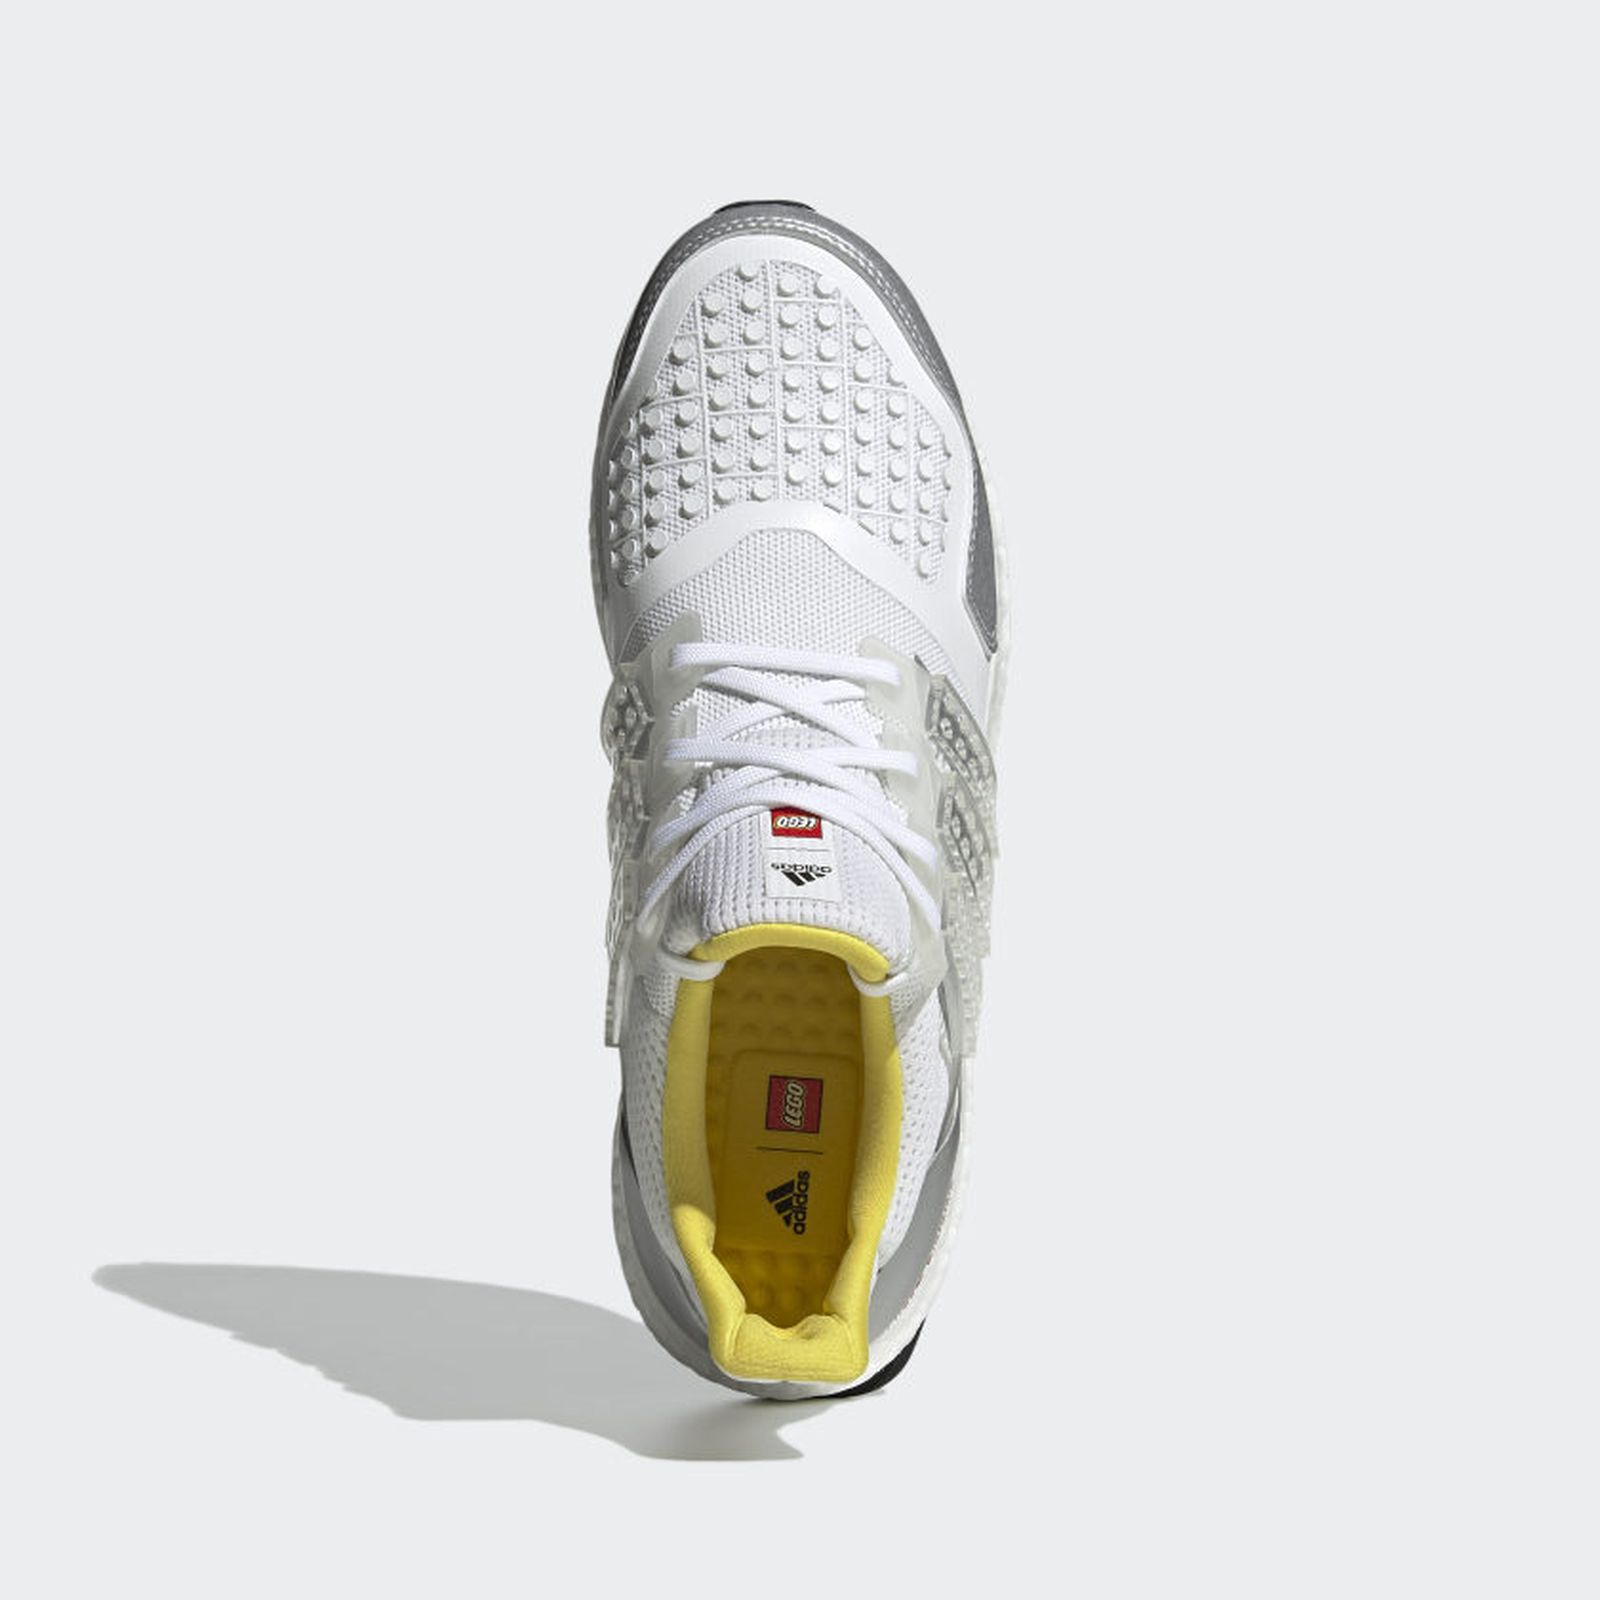 lego-adidas-ultraboost-dna-release-date-price-04